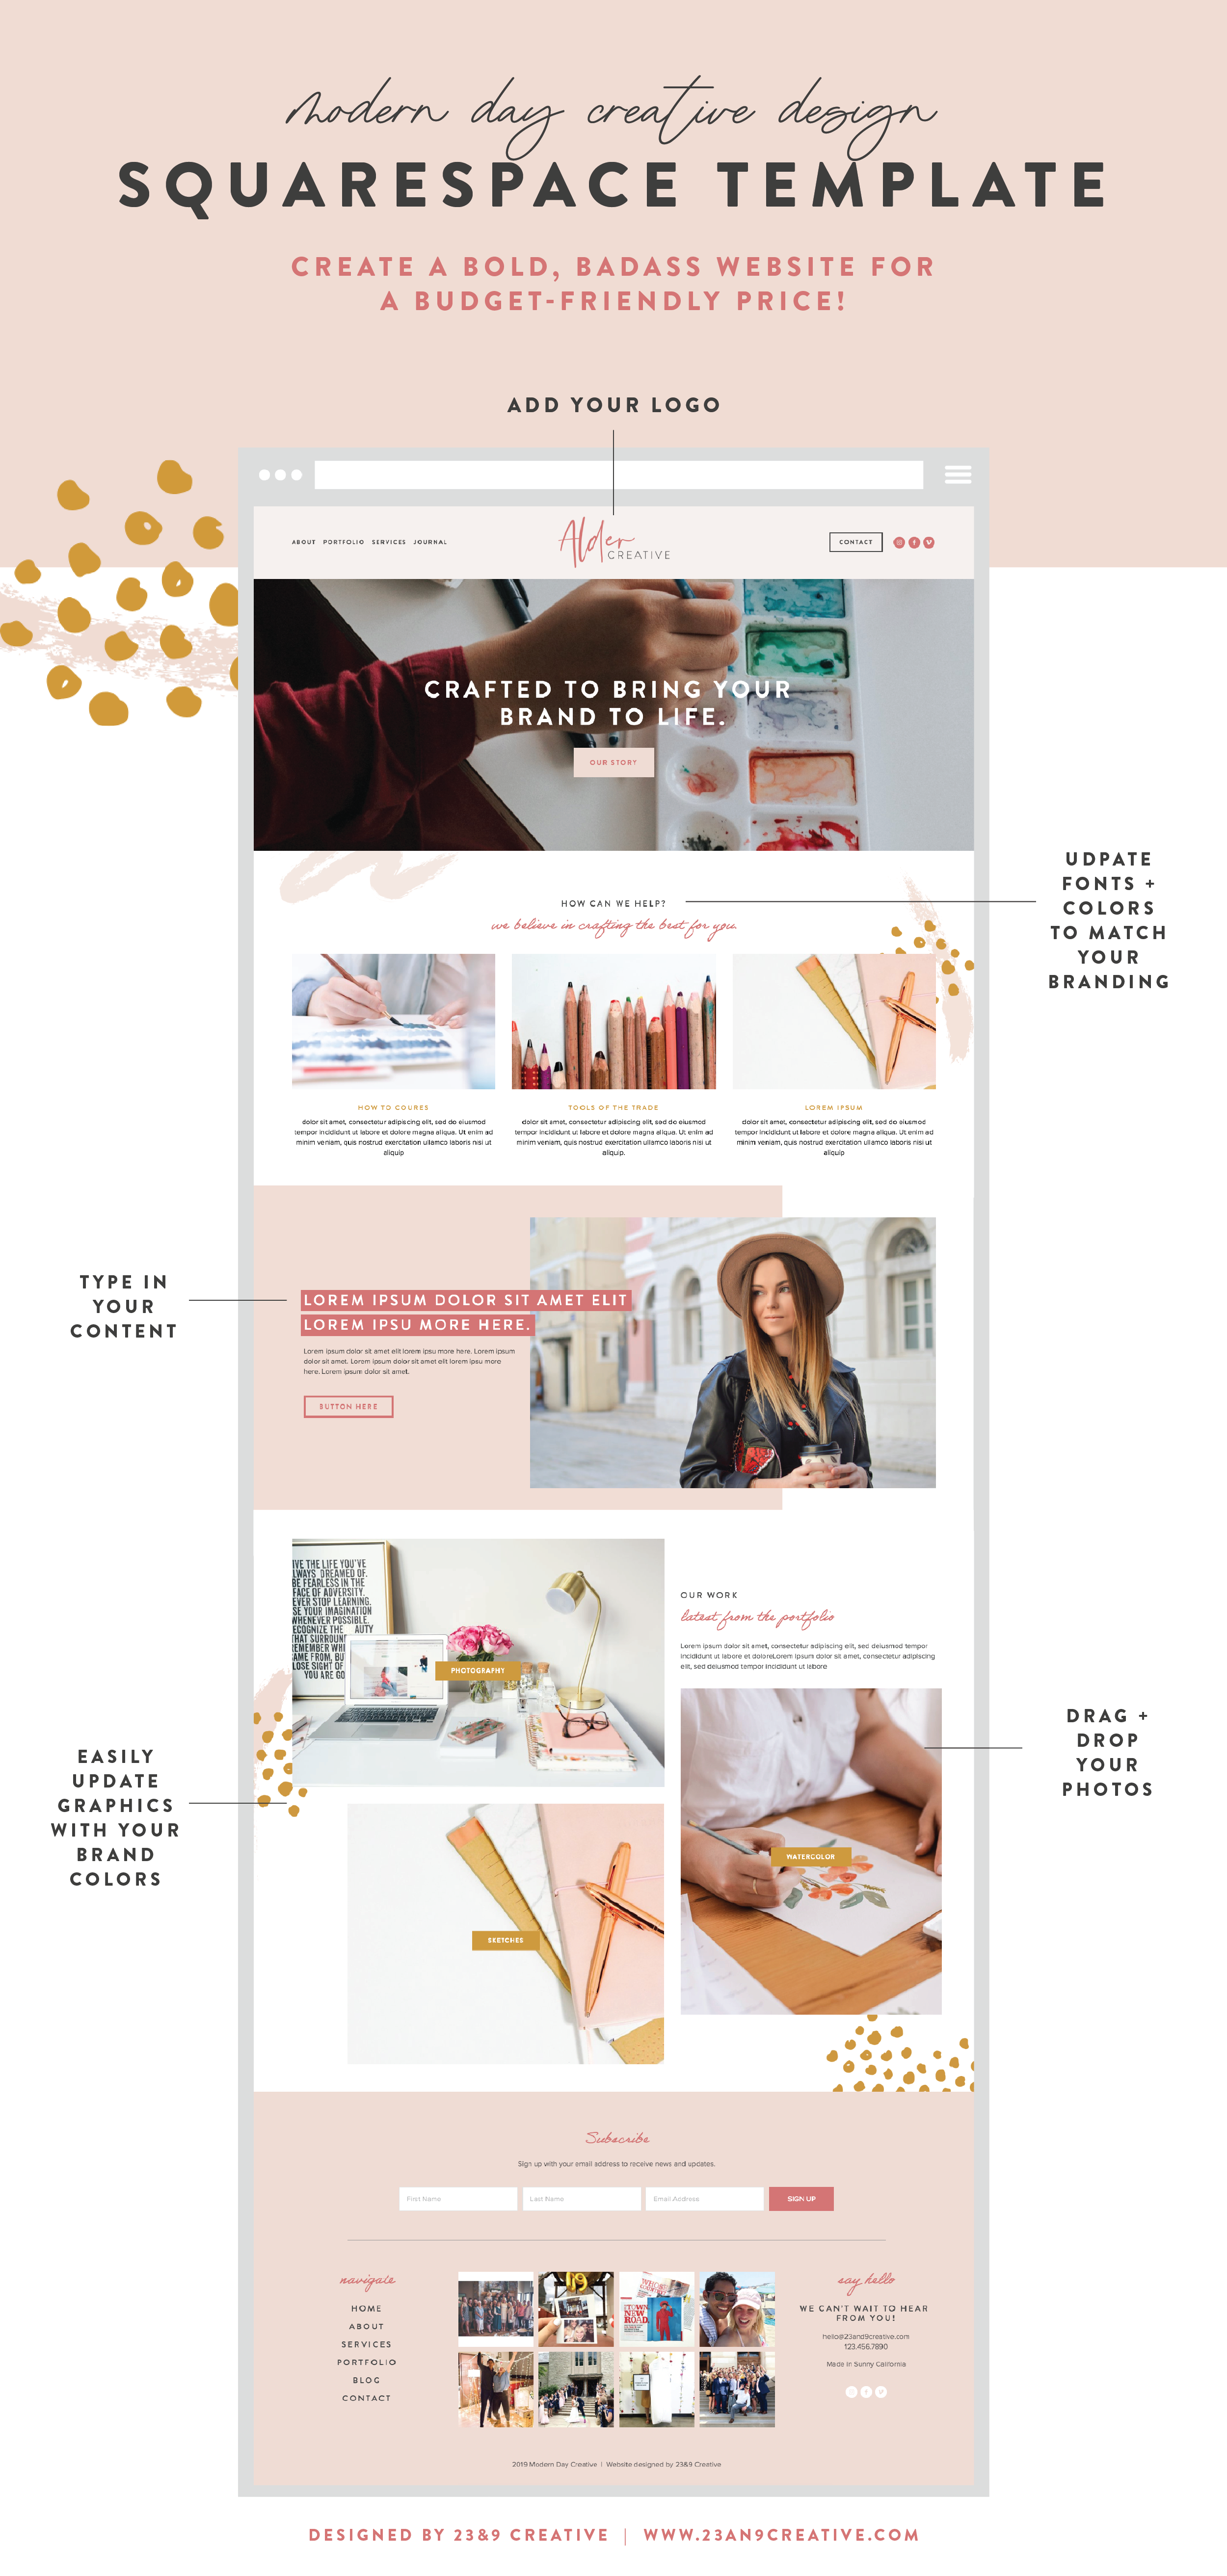 SQUARESPACE WEBSITE TEMPLATE Design:  The Modern Day Creative | Customizable Graphics | Squarespace Training | Installation